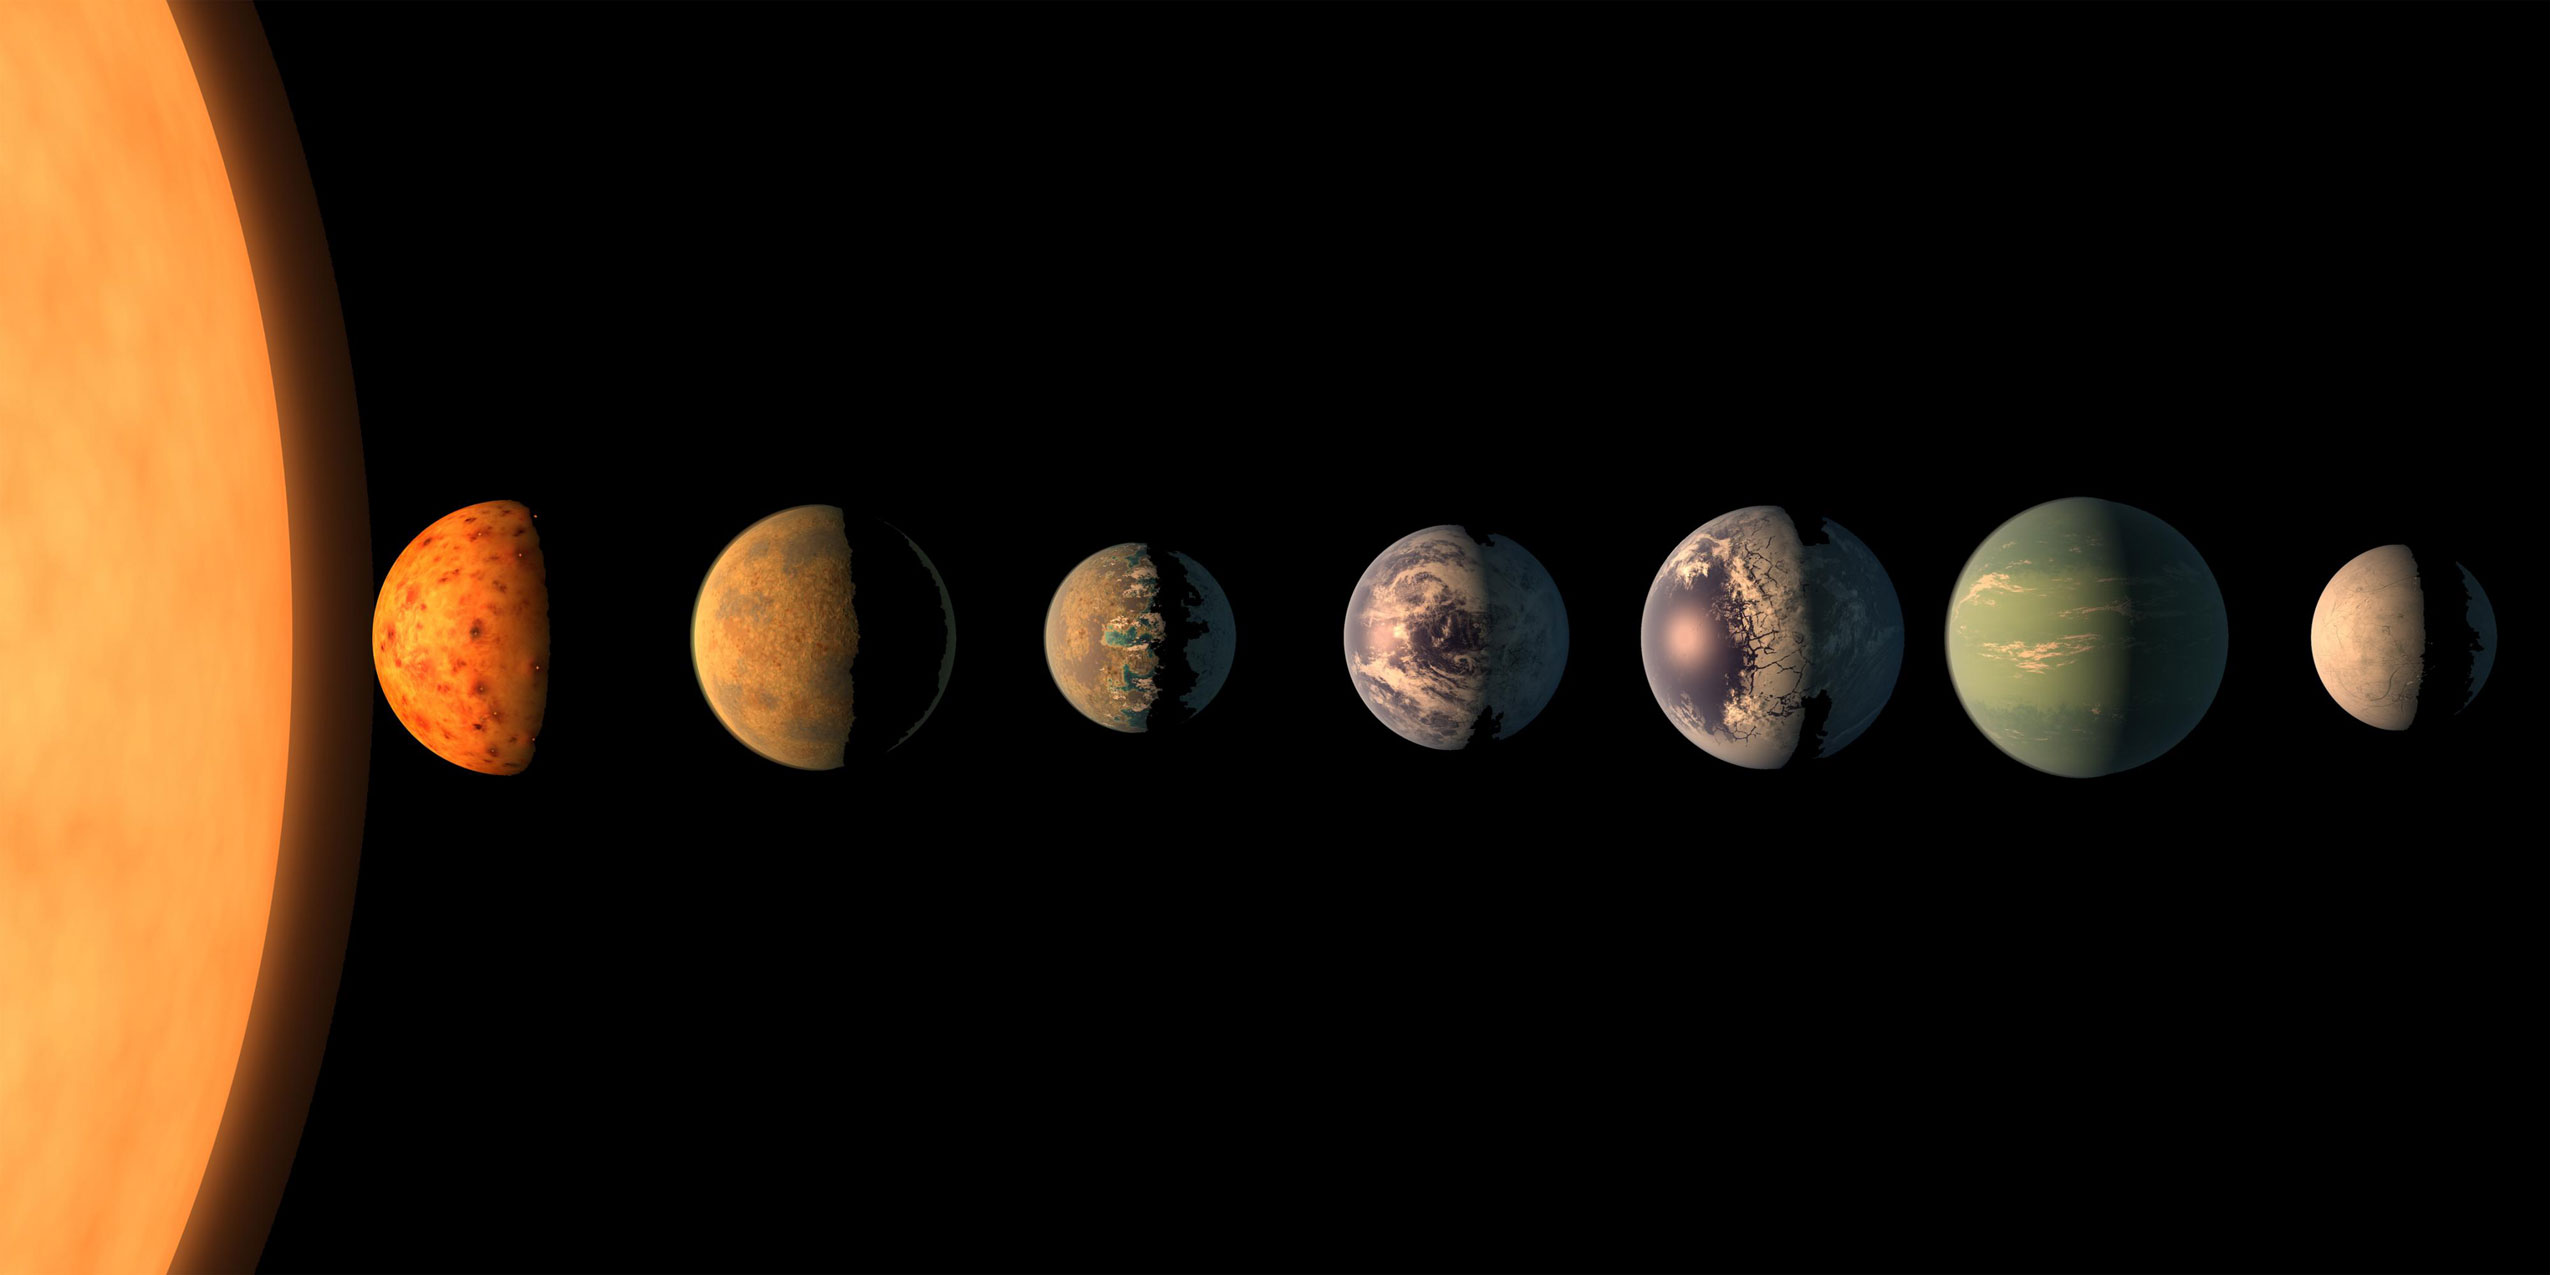 Watery Asteroid Could Be Sign Of Habitable Exoplanets